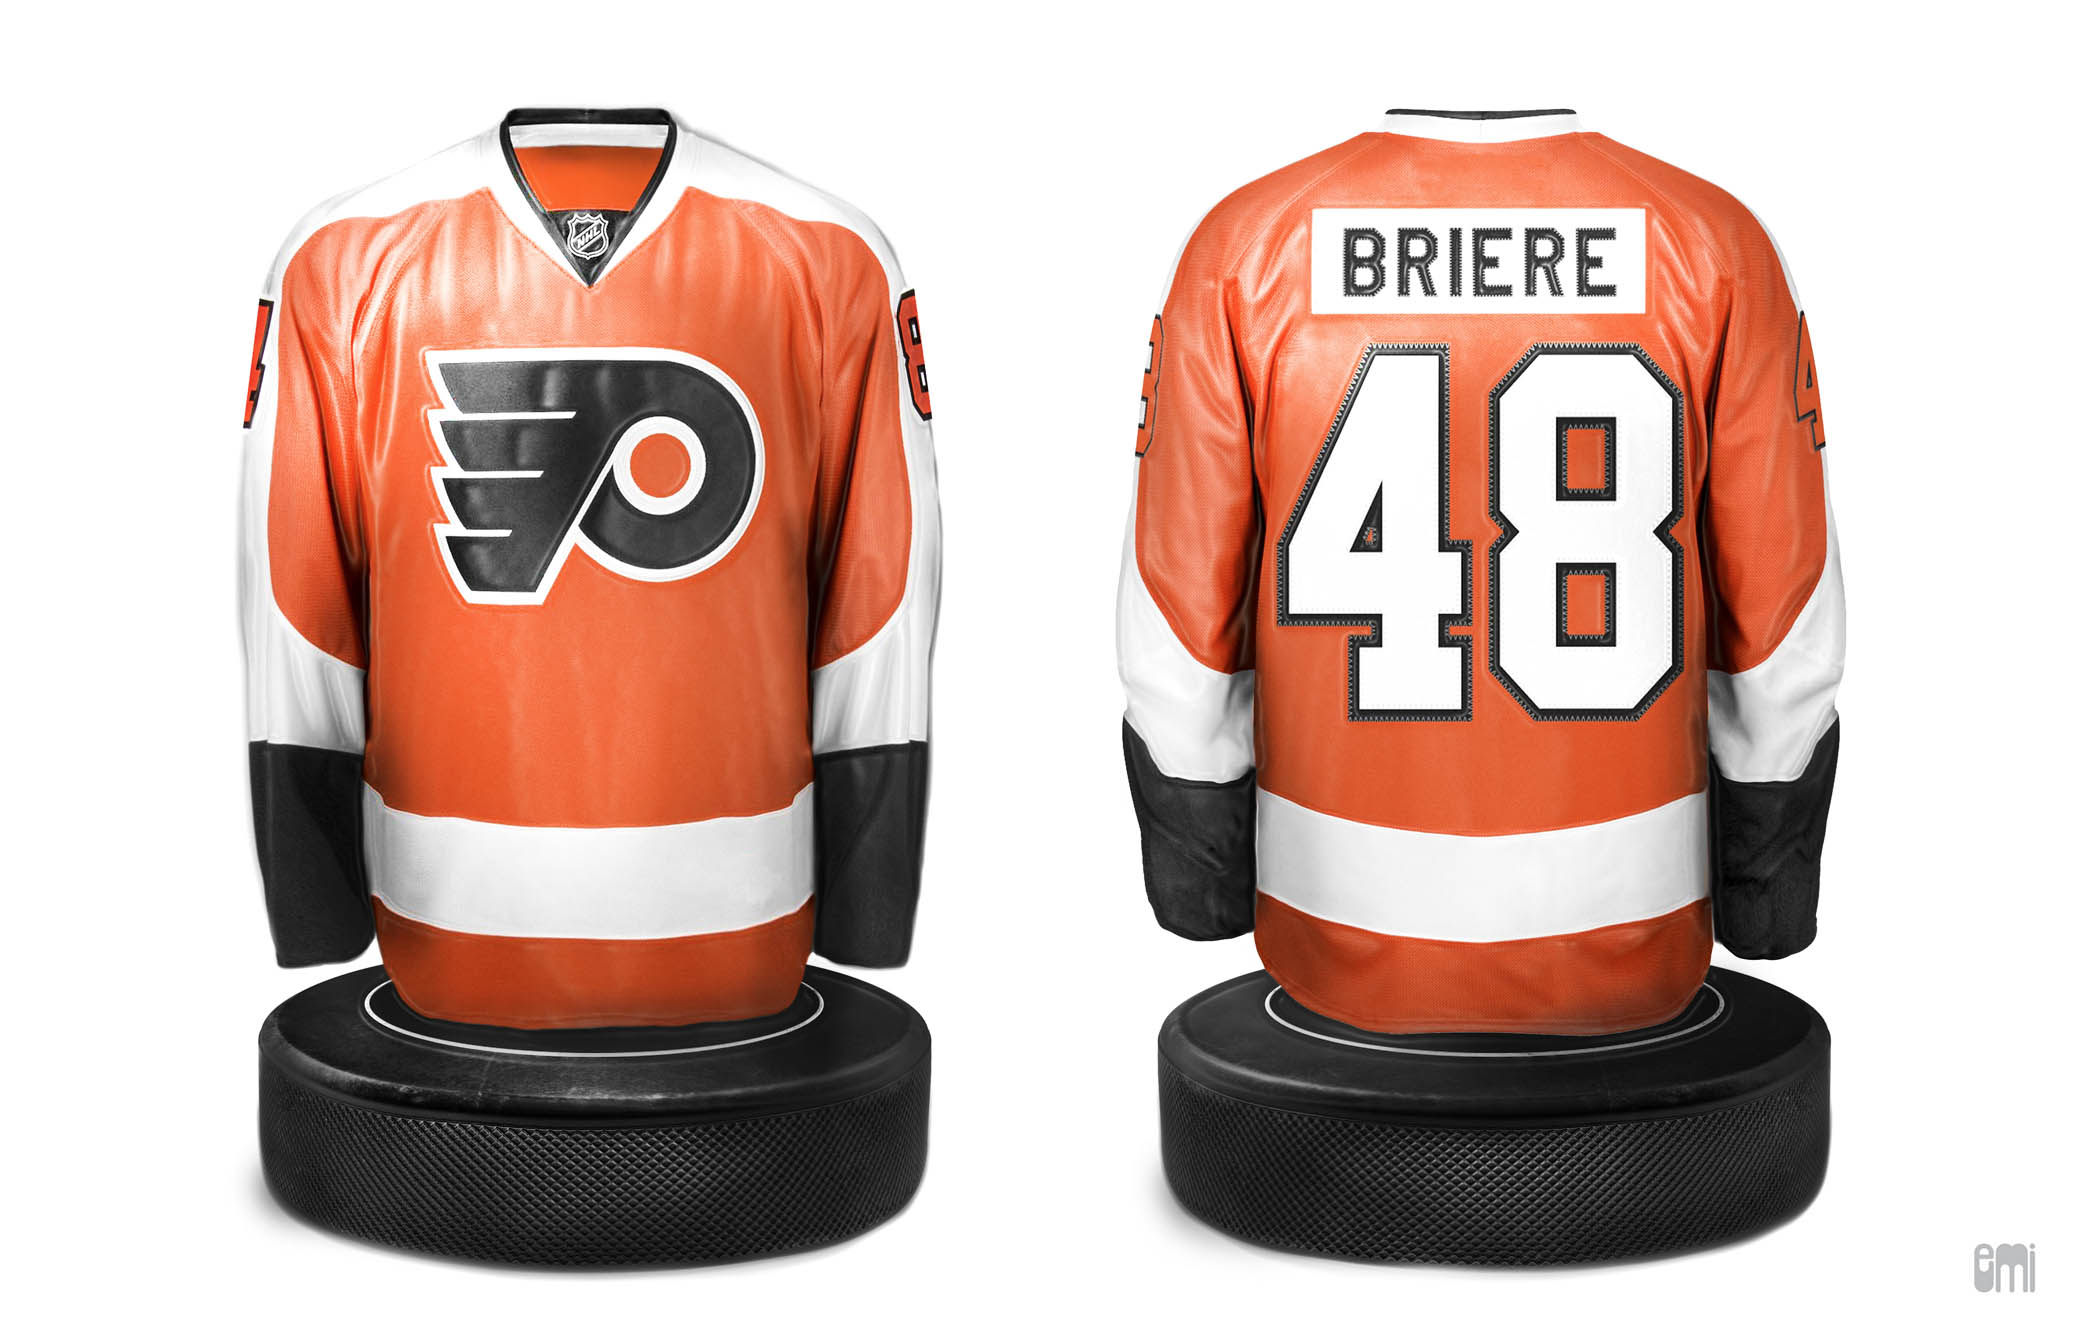 Briere Hockey Jersey Replica Desktop Polyresin Miniature, design by emi